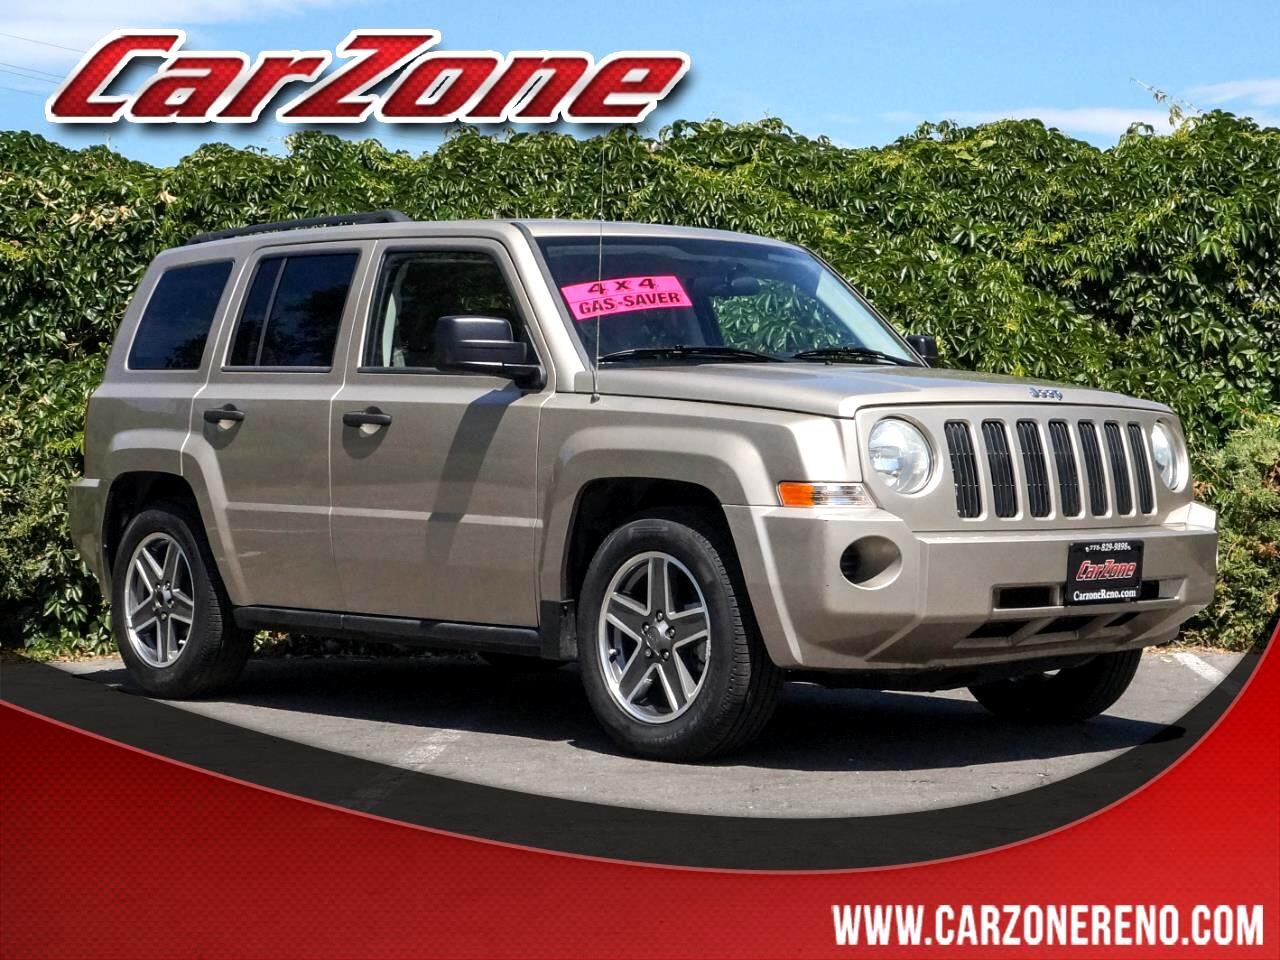 2009 Jeep Patriot 4WD 4dr Sport